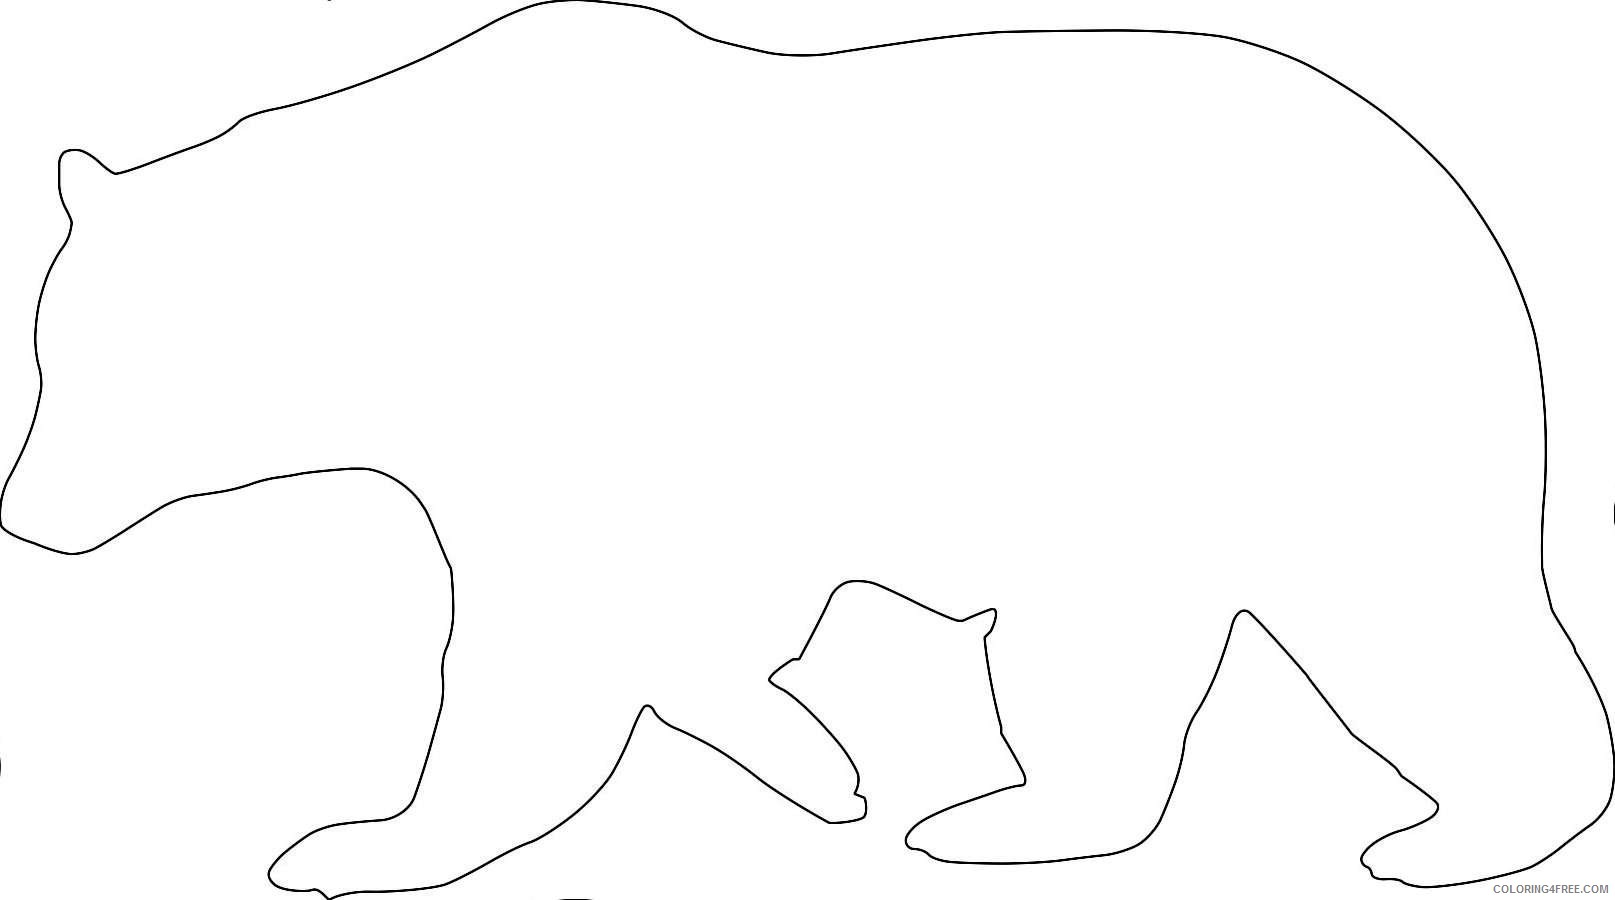 outline of black bear photos good pix gallery Zsf0di coloring